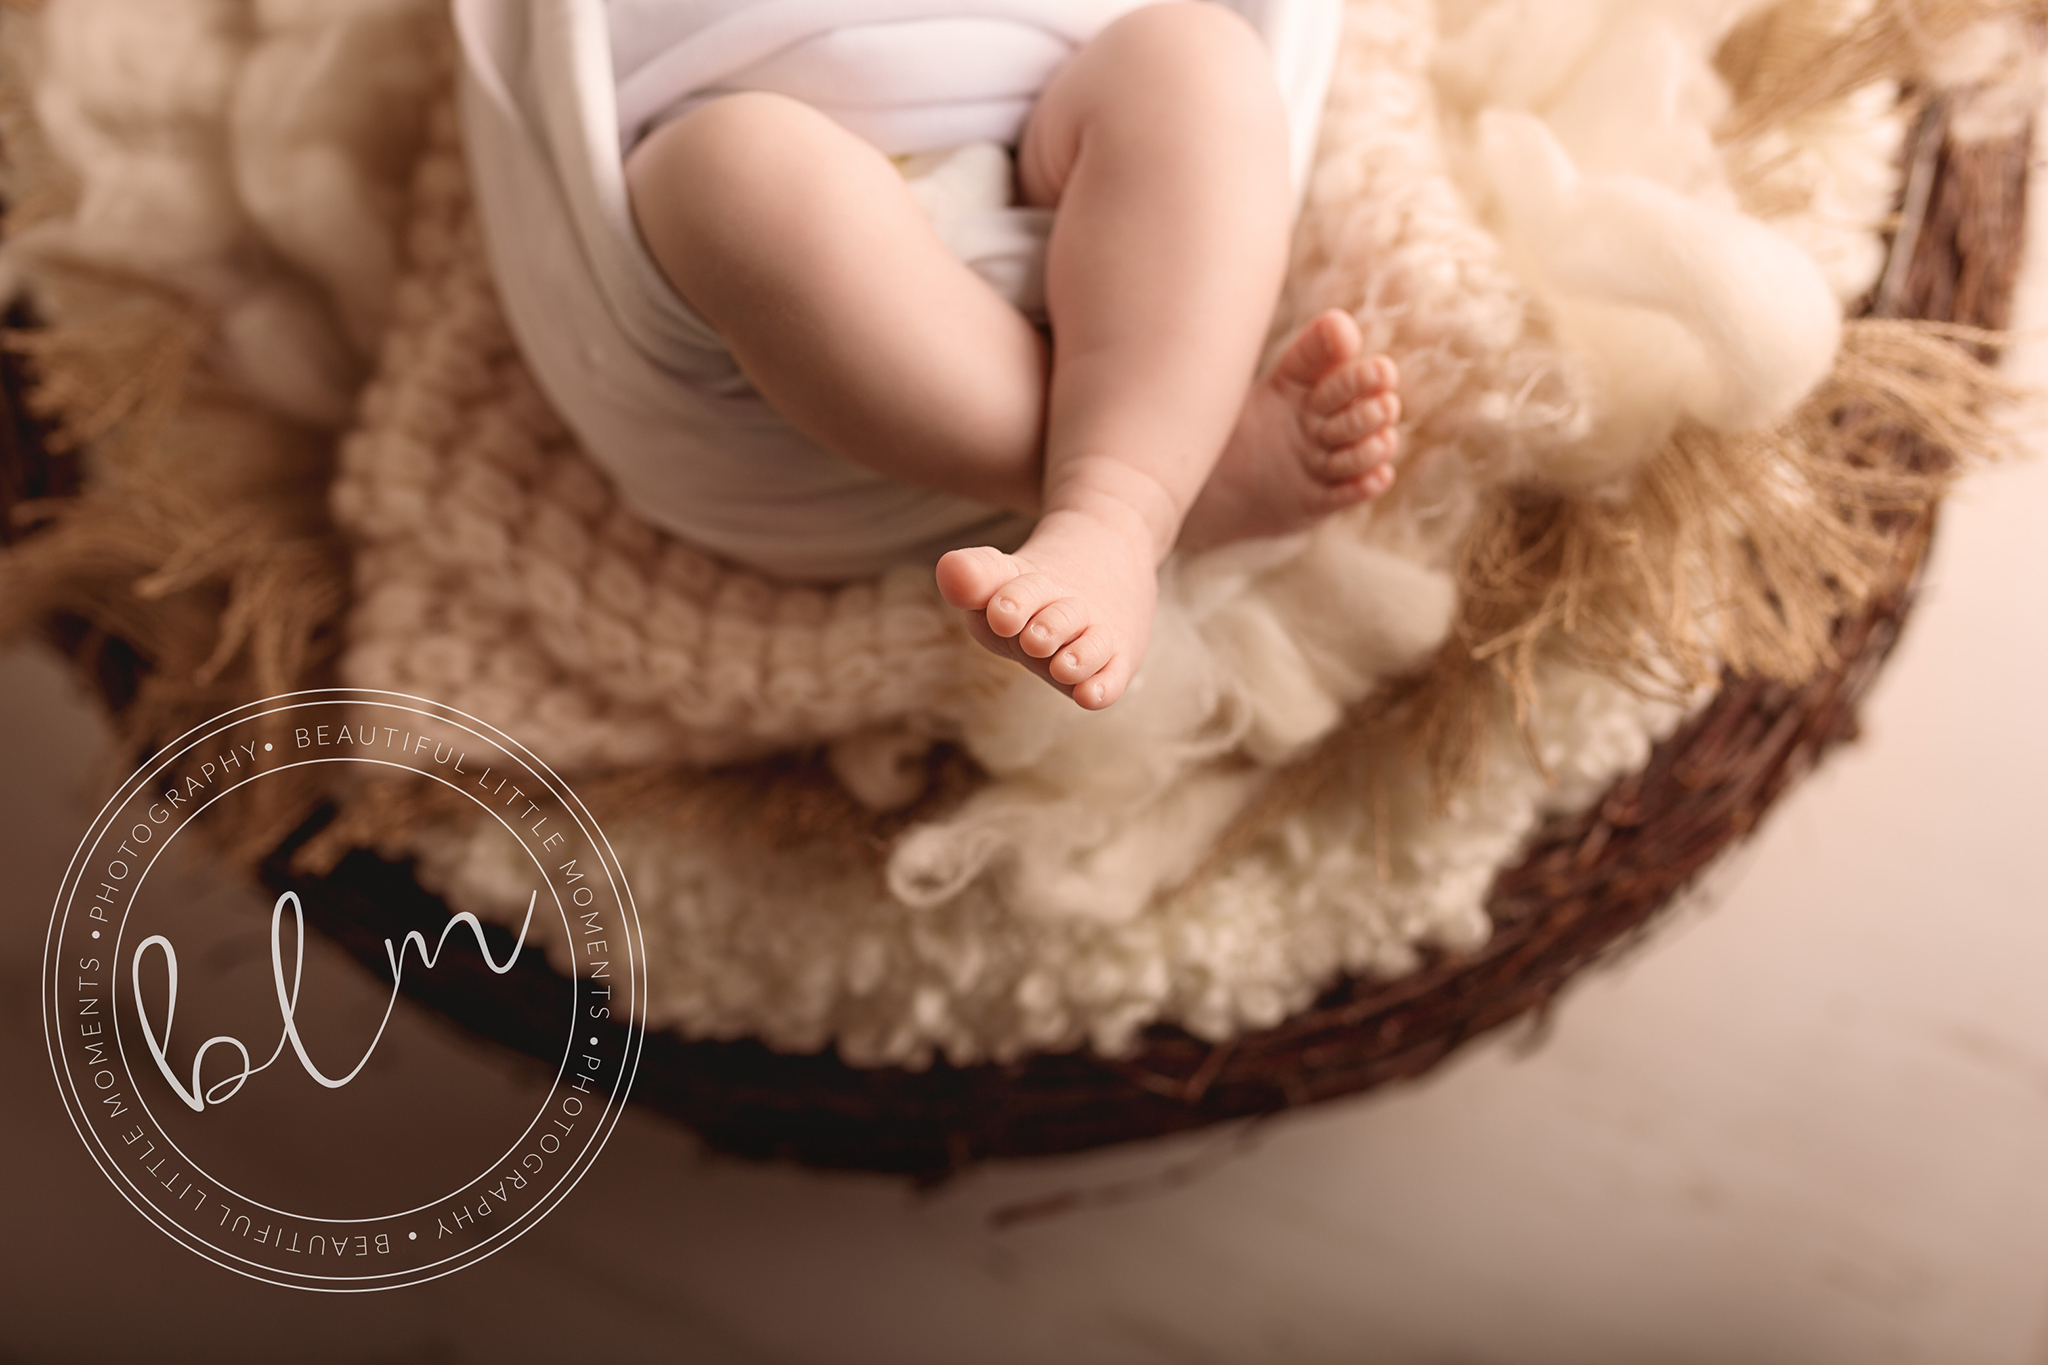 newborn baby girl photo shoot baby feet